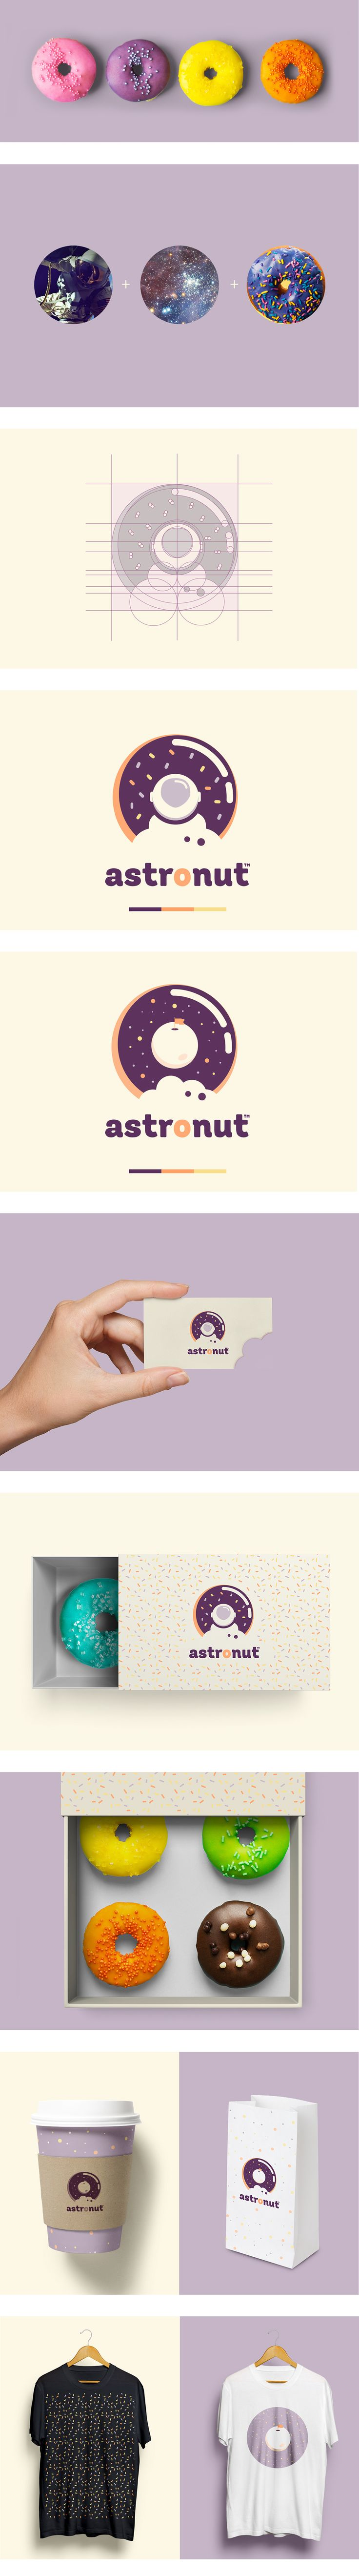 Astronut is a new bakery from Mexico City specialized on donuts from outer space. Branding, Packaging & Business Cards